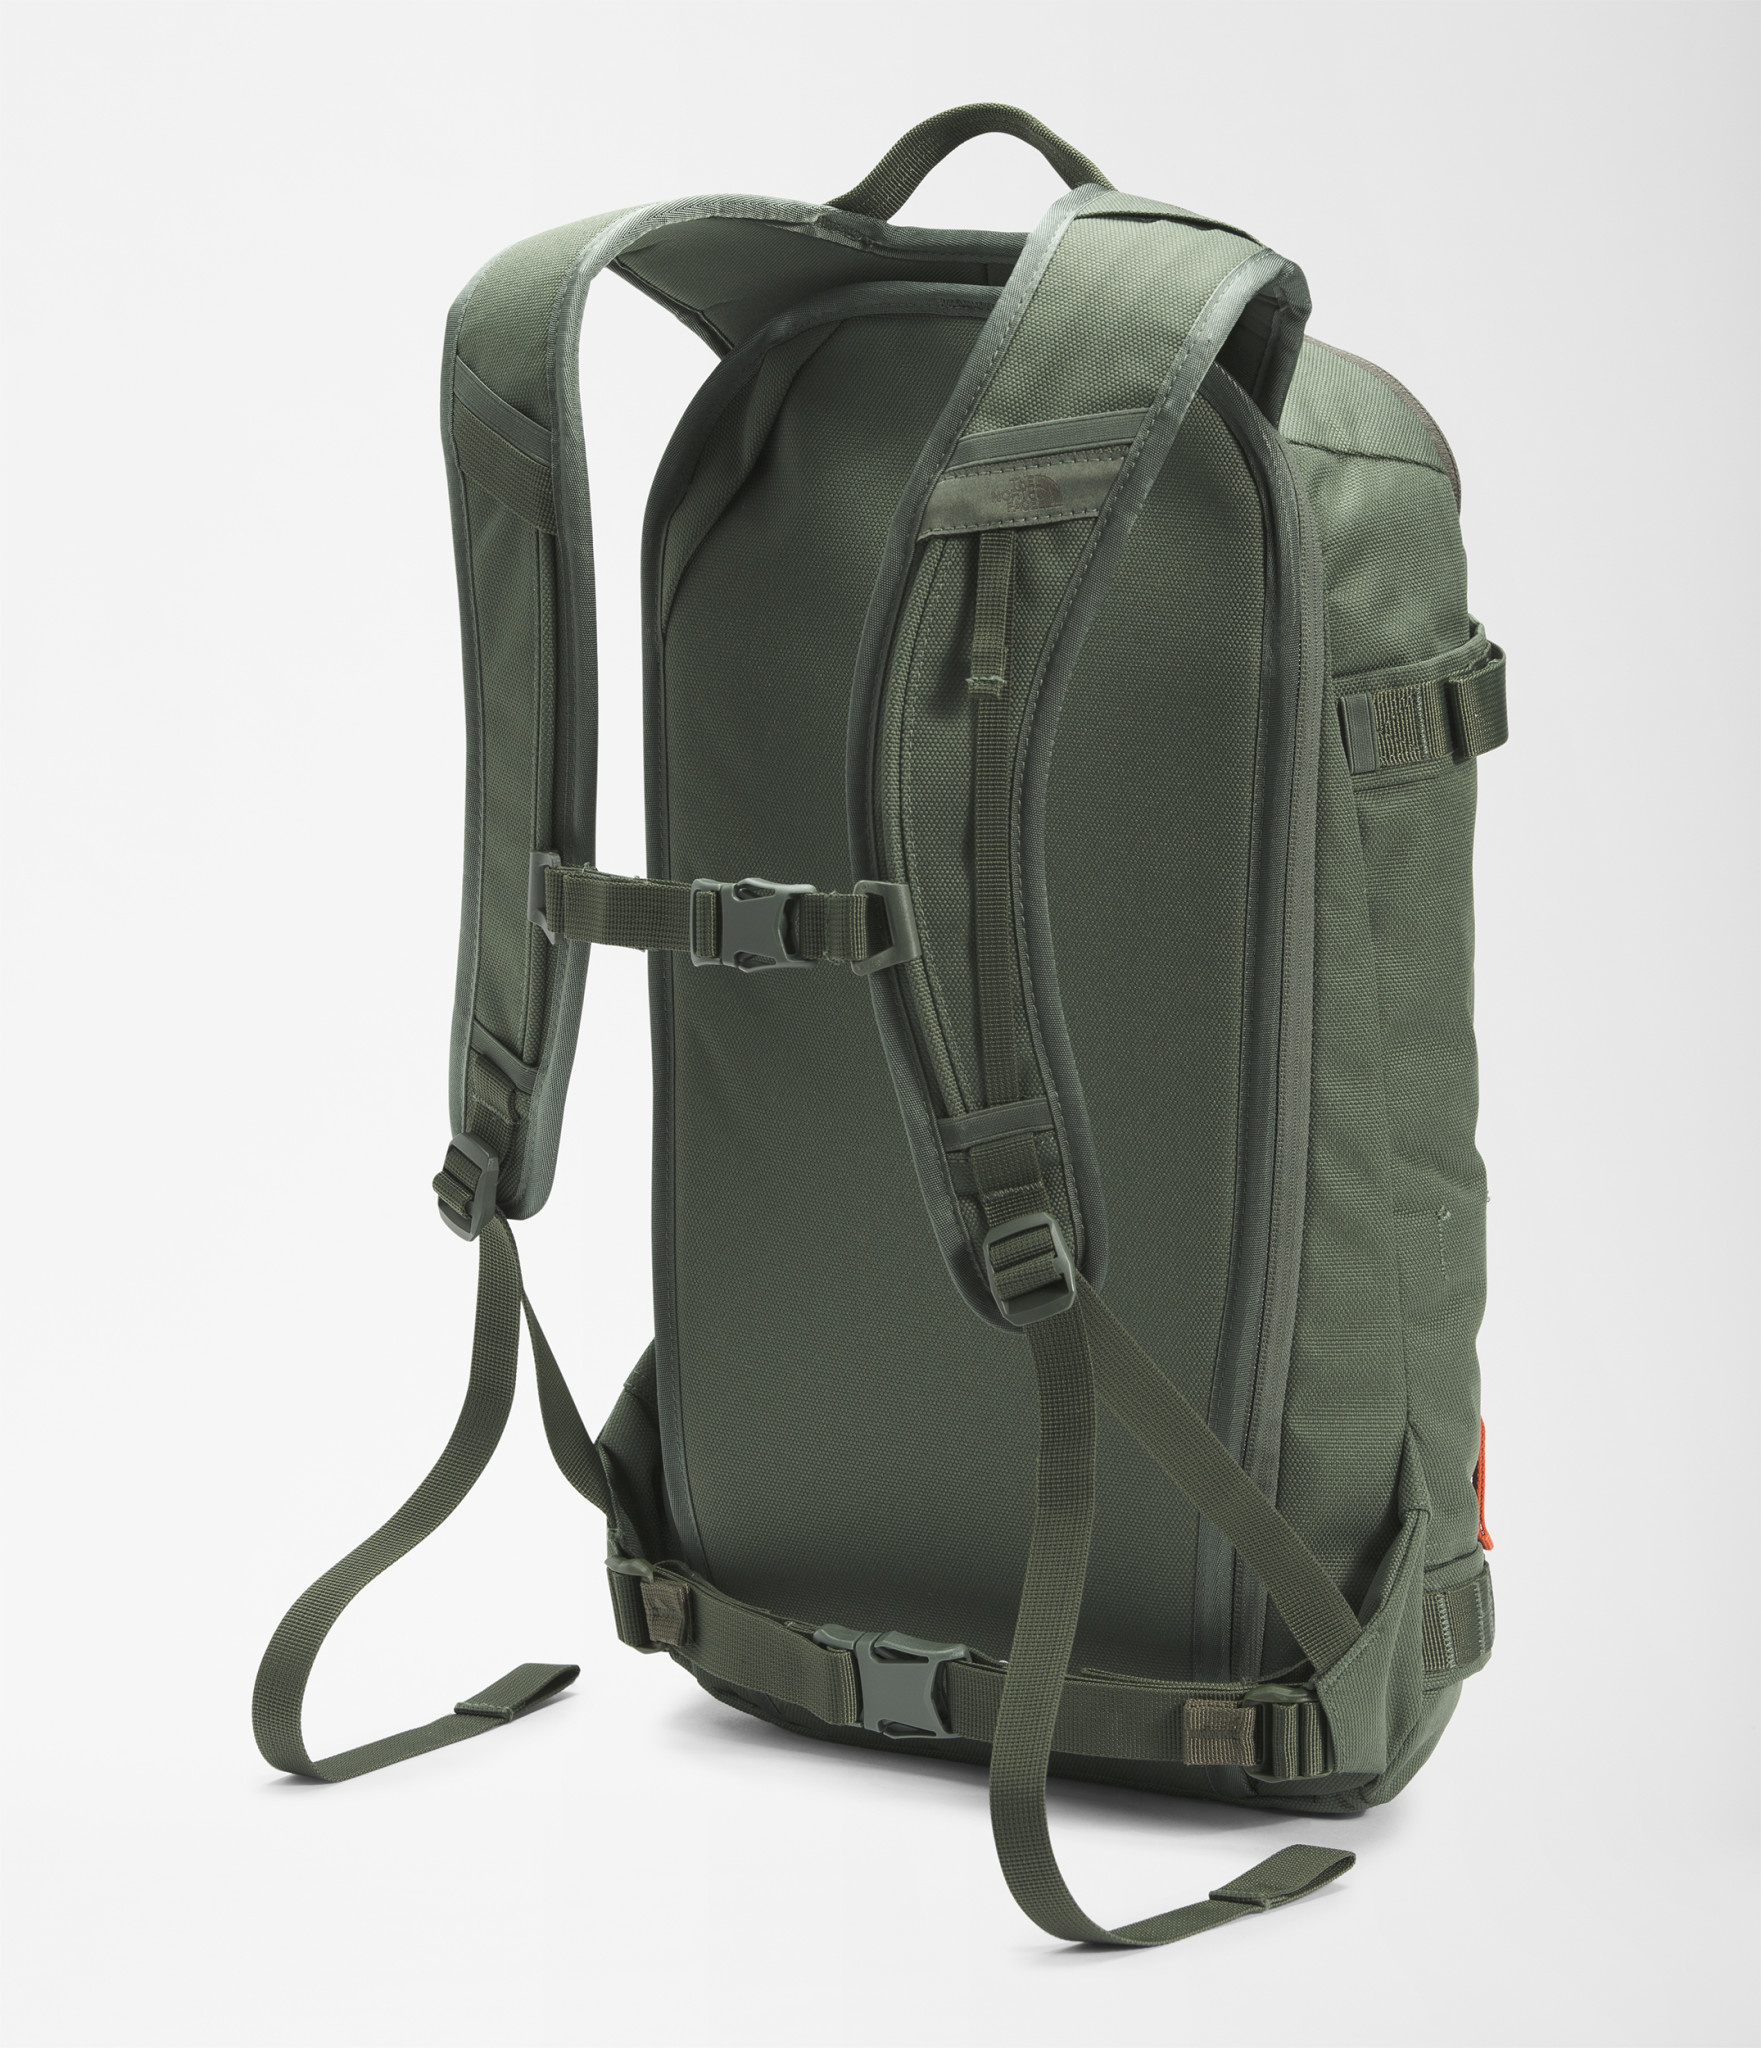 The North Face The North Face Slackpack 2.0 Backpack